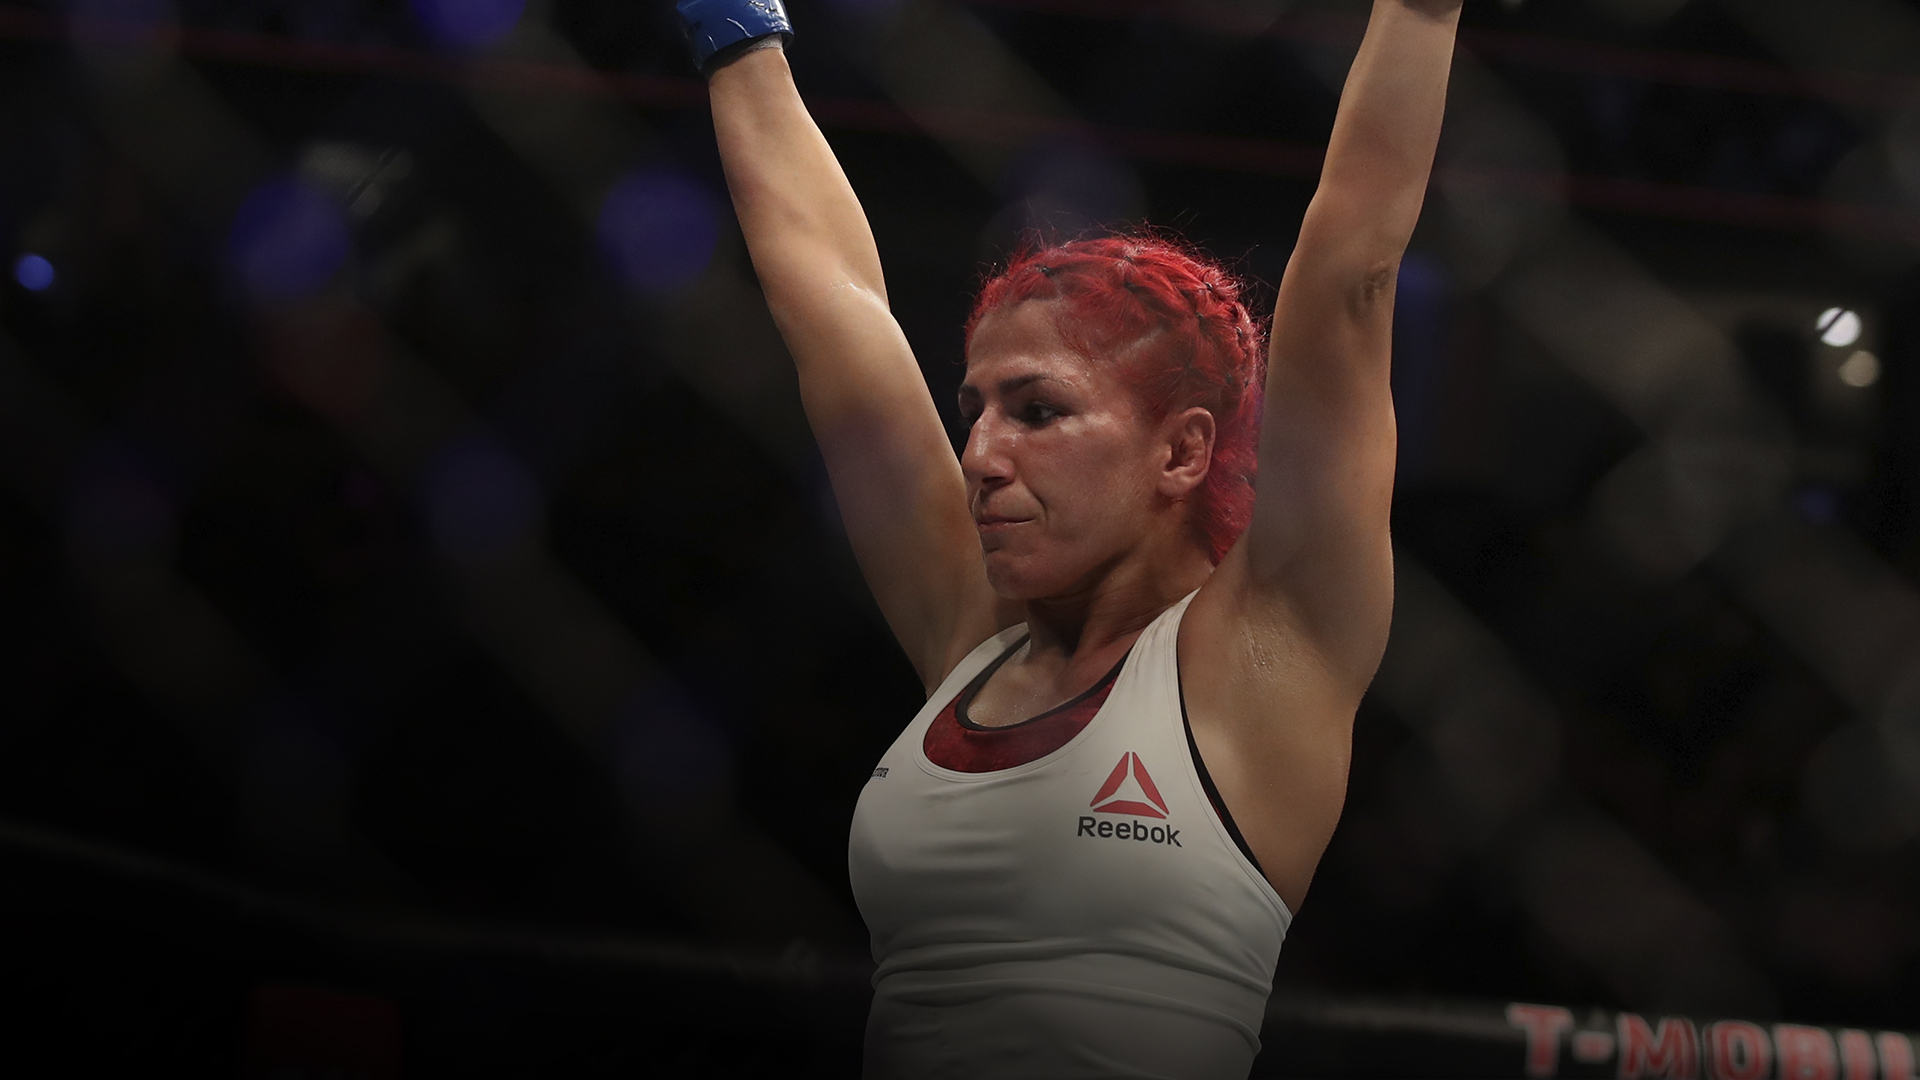 Randa Markos of Canada raises he hand at the finish of the match against Claudia Gadelha of Brazil in their strawweight fight during the UFC 239 event at T-Mobile Arena on July 6, 2019 in Las Vegas, Nevada. (Photo by Christian Petersen/Zuffa LLC)